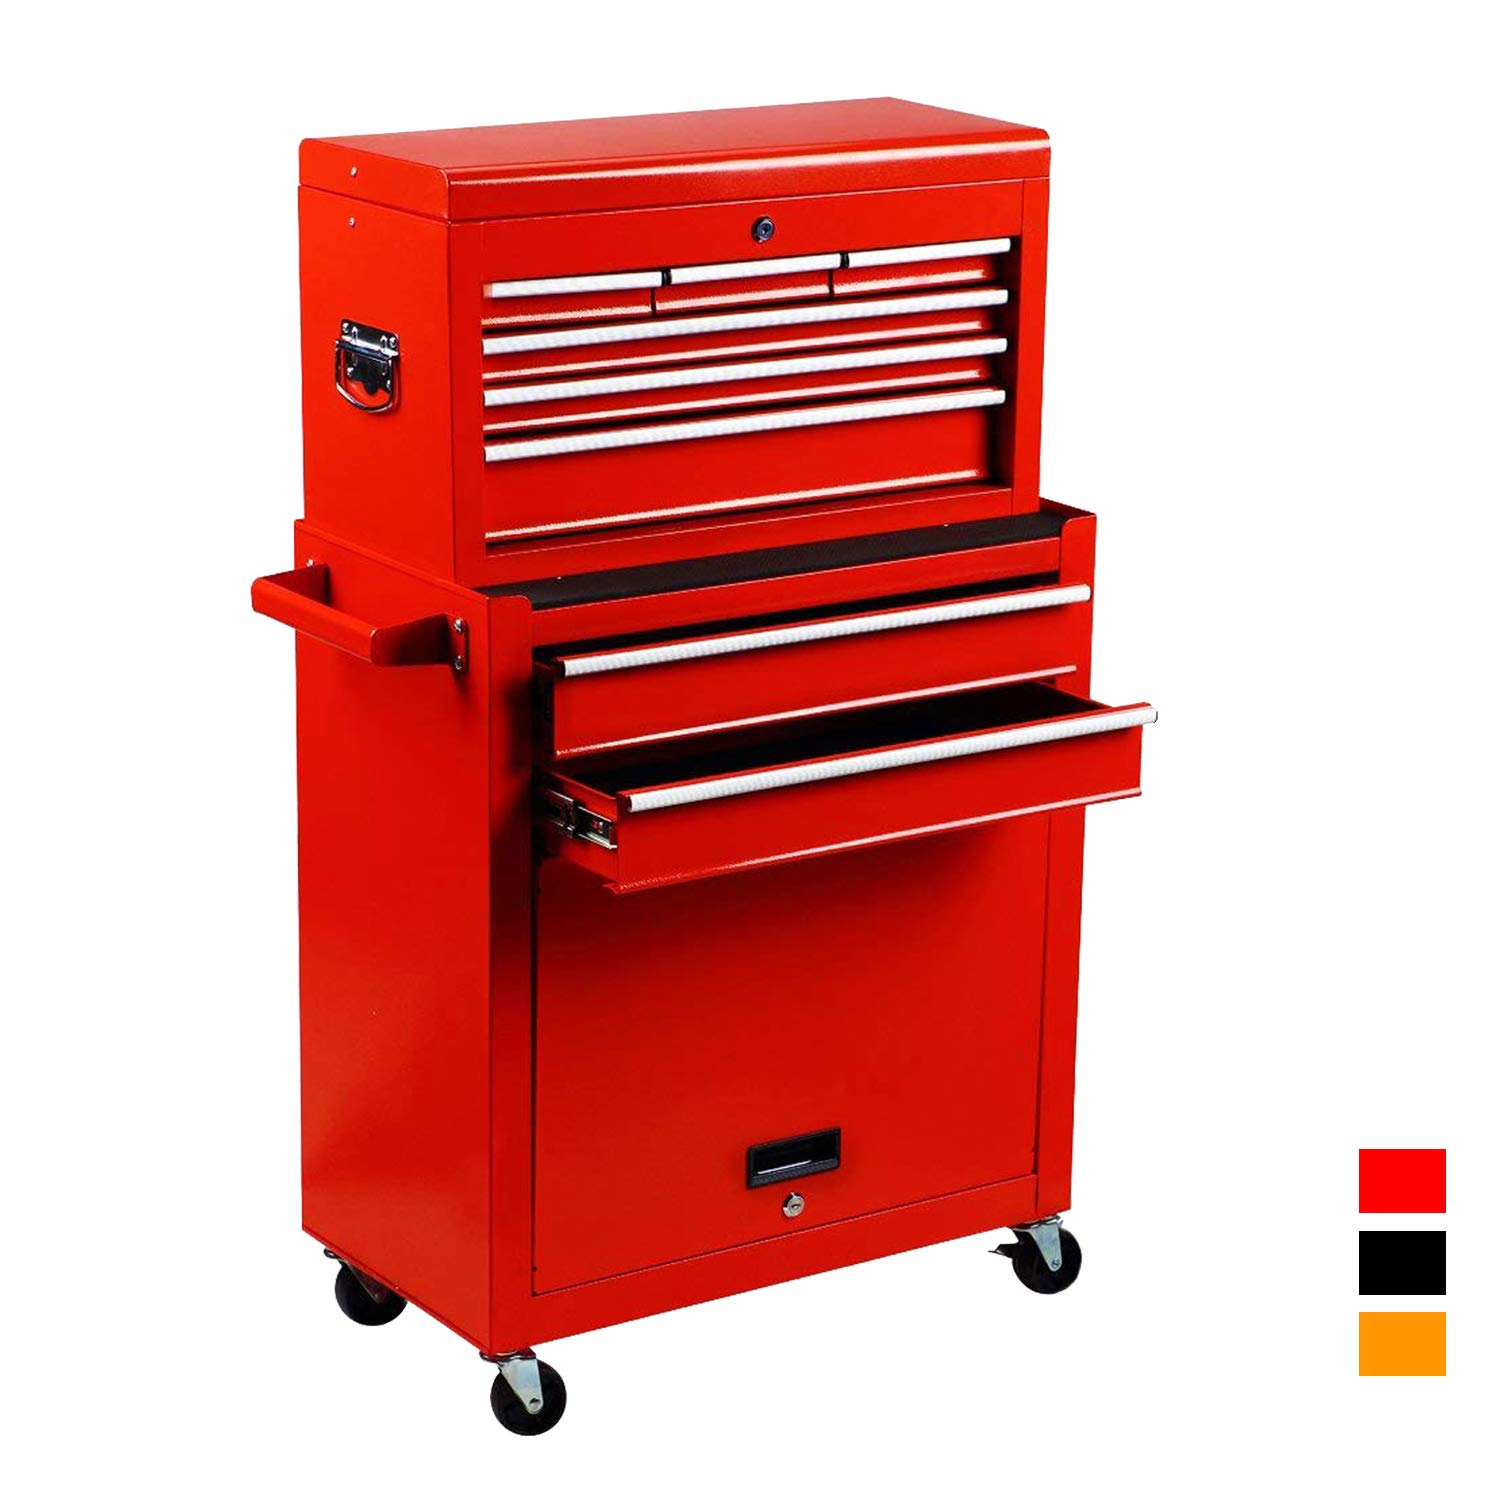 2Pcs Tool Storage Box Portable Top Chest Rolling Tool Box Organizer Sliding Drawers Cabinet Keyed Locking System Toolbox Red by Suny Deals (Image #1)